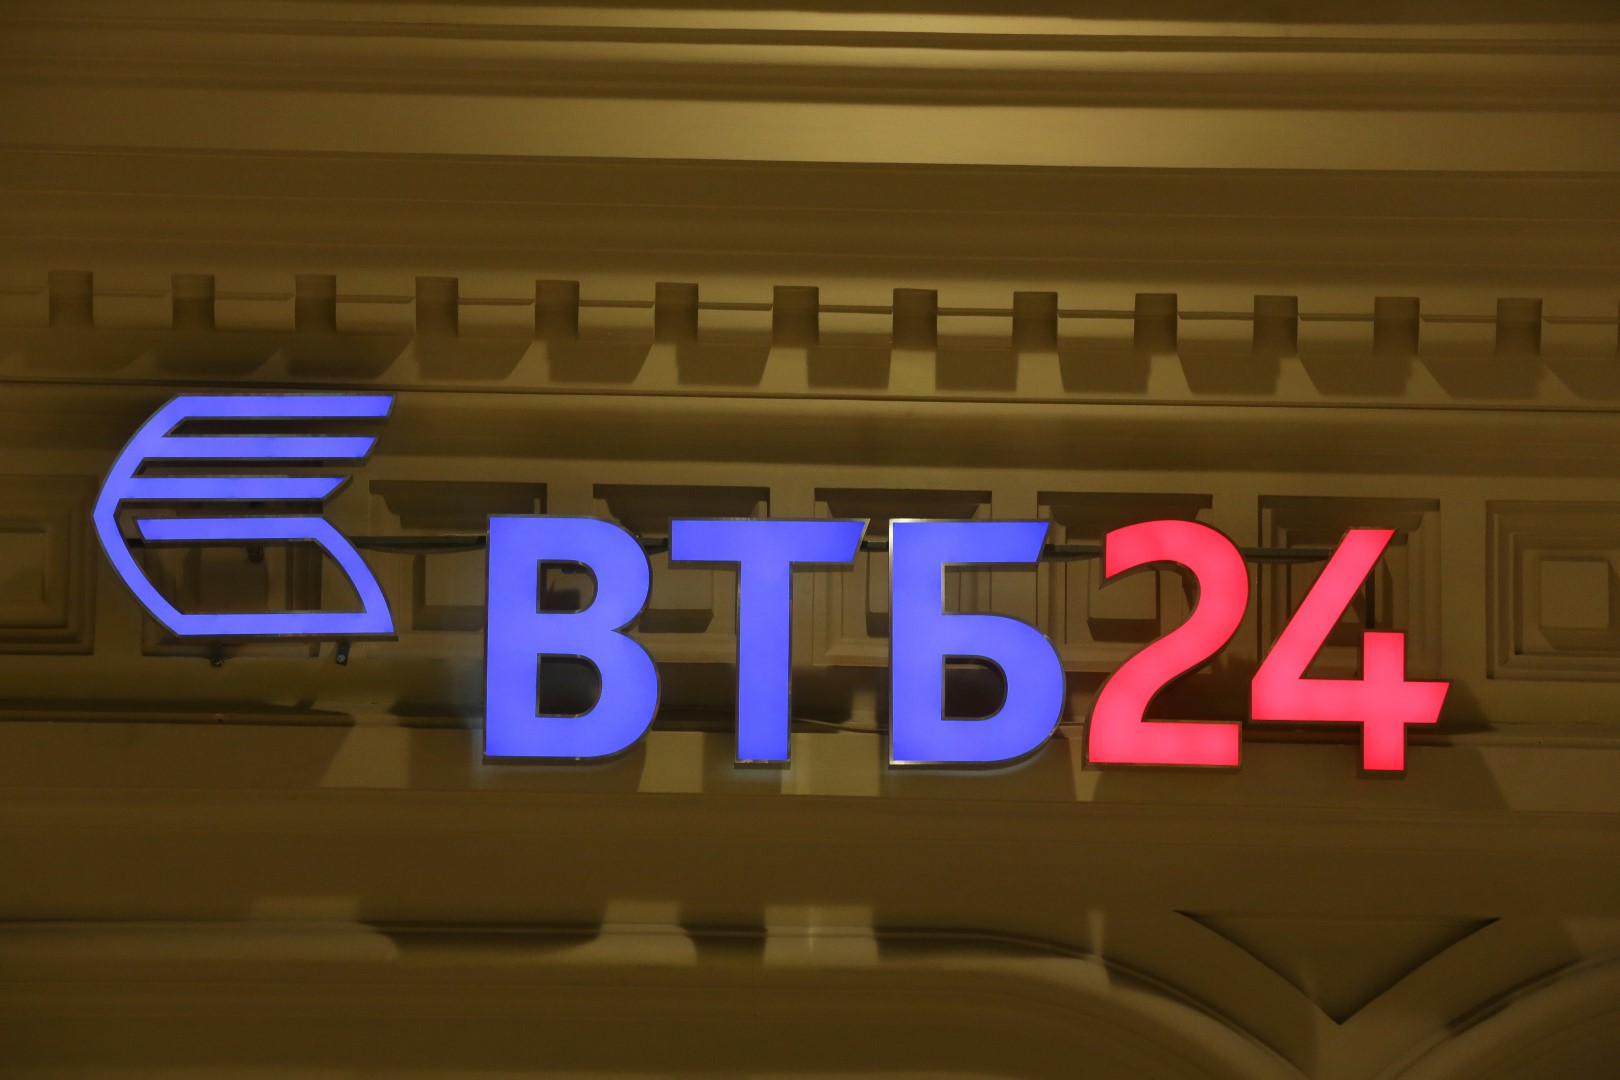 An illuminated sign for Bank VTB 24, a retail unit of state-controlled VTB Group, sits on display above an automated teller machine (ATM) outlet in Moscow, Russia, on Monday, Dec. 22, 2014. The ruble's rout, sparked by falling oil prices and sanctions imposed on businesses including OAO Sberbank, prompted Russians to begin buying luxury goods from Porsche sports cars to Tiffany rings to preserve the value of their savings. Photographer: Andrey Rudakov/Bloomberg